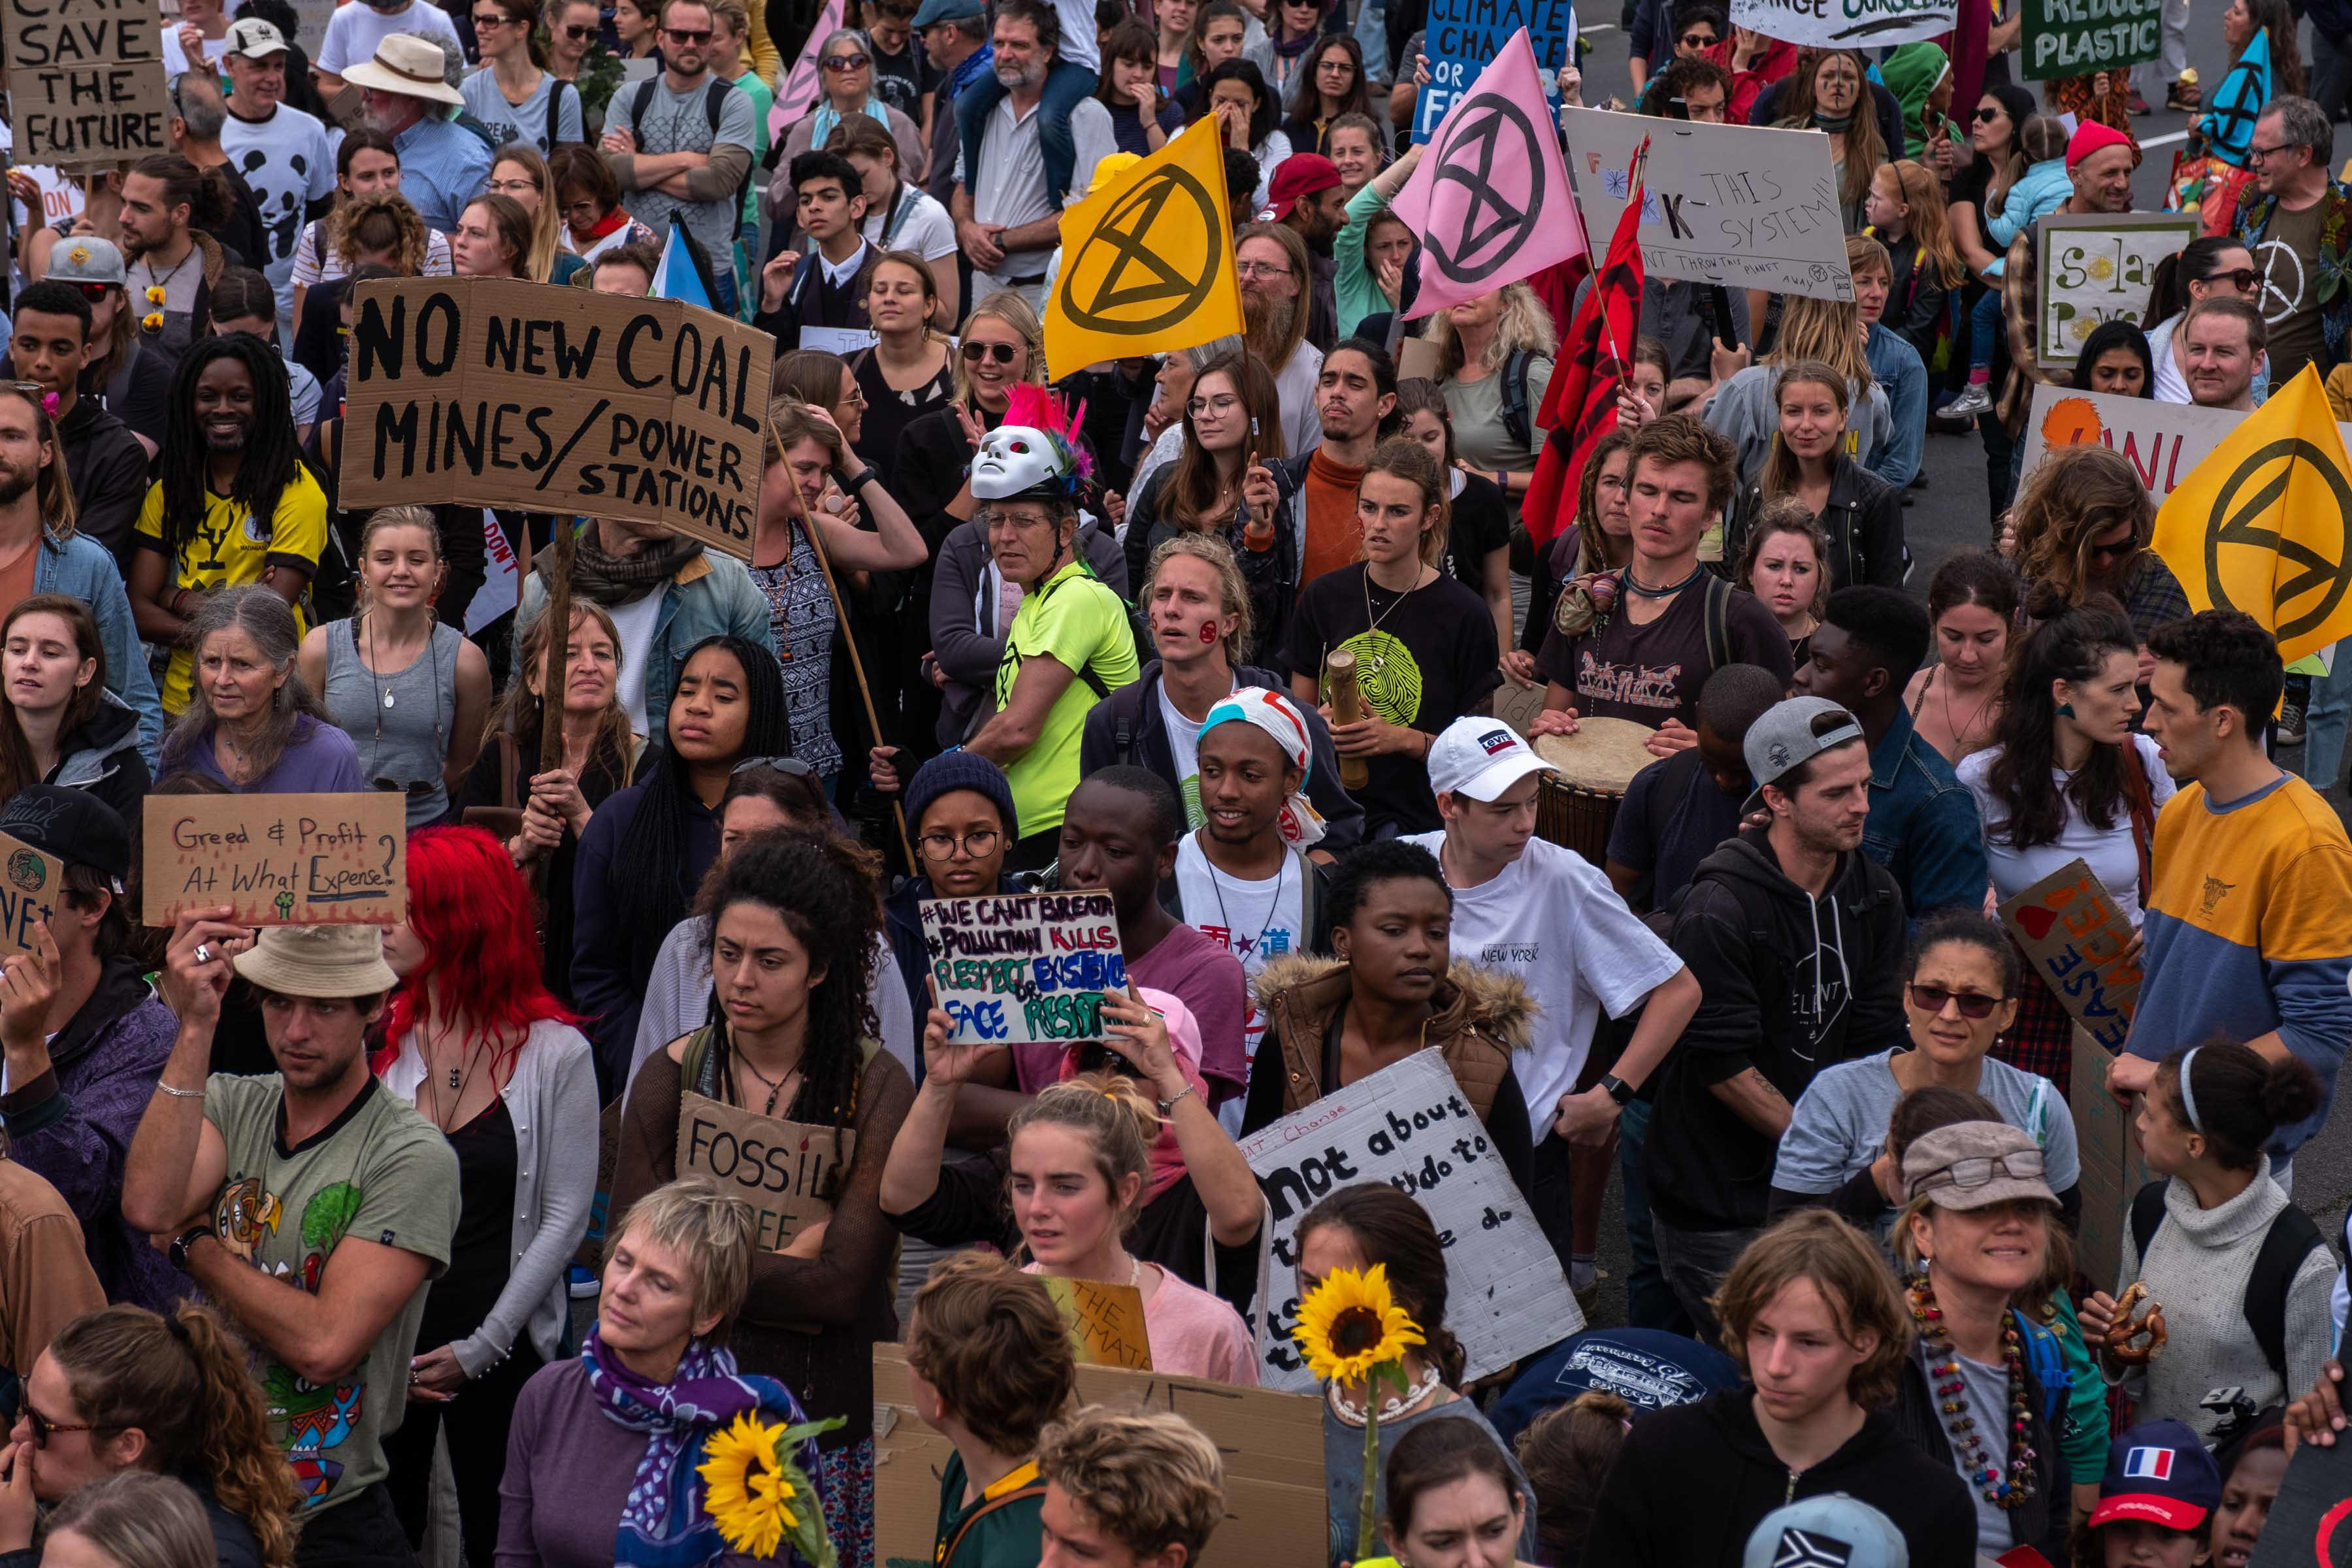 20 September 2019: The crowd of climate protesters outside the Parliament buildings in Cape Town. (Photograph by Barry Christianson).